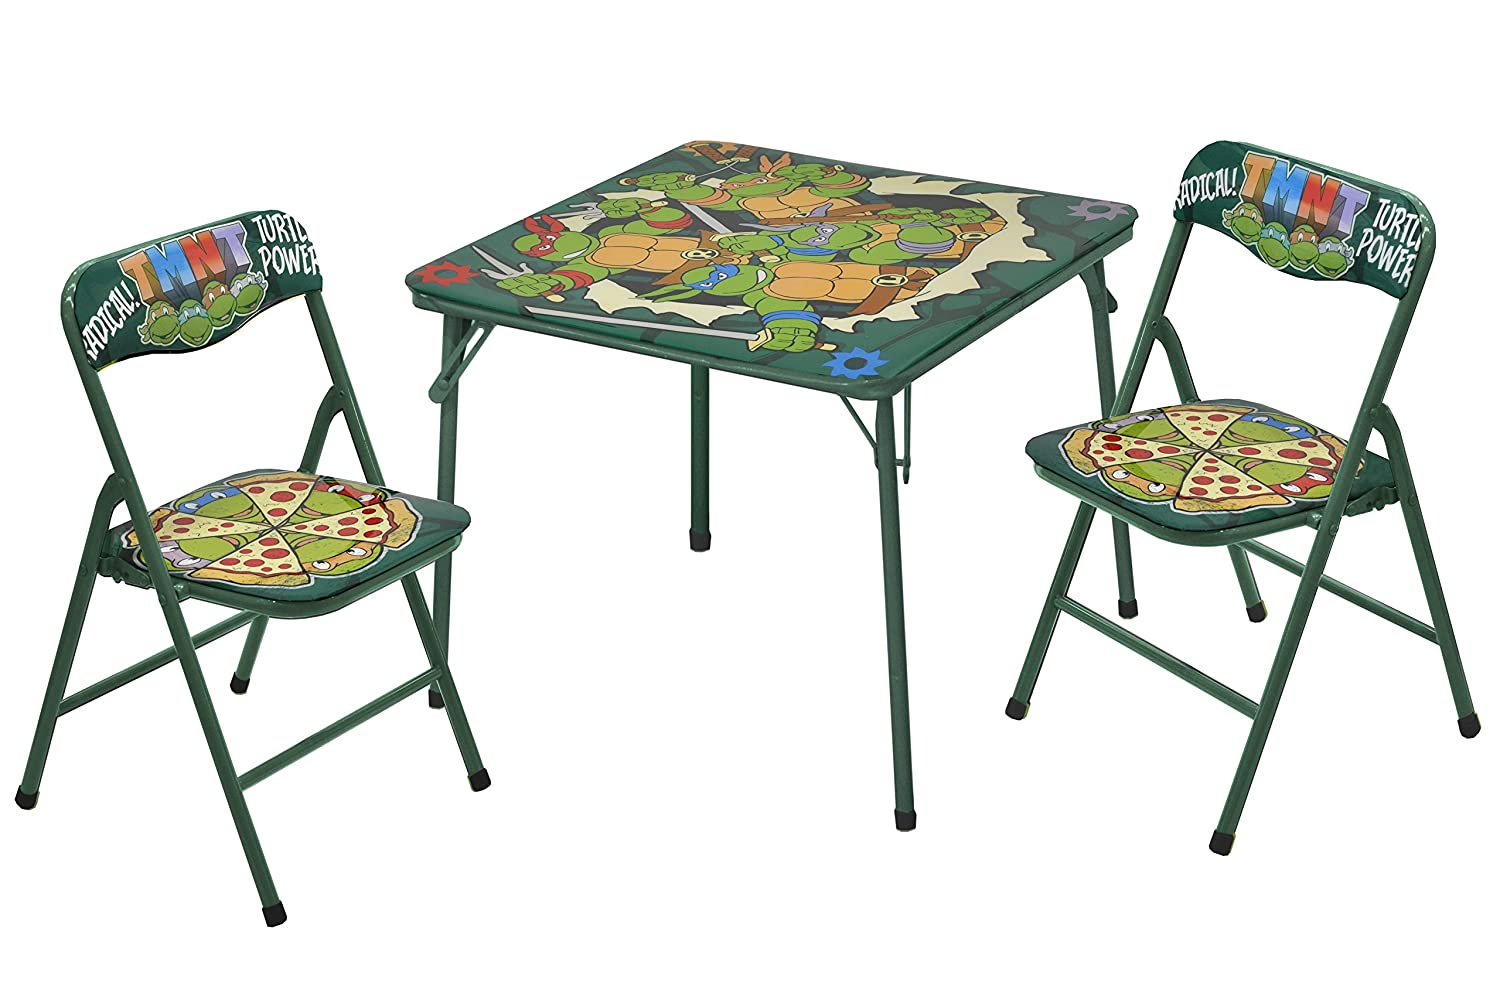 Nickelodeon Teenage Mutant Ninja Turtles 3-Piece Table and Chair Set Idea Nuova - LA RN340145